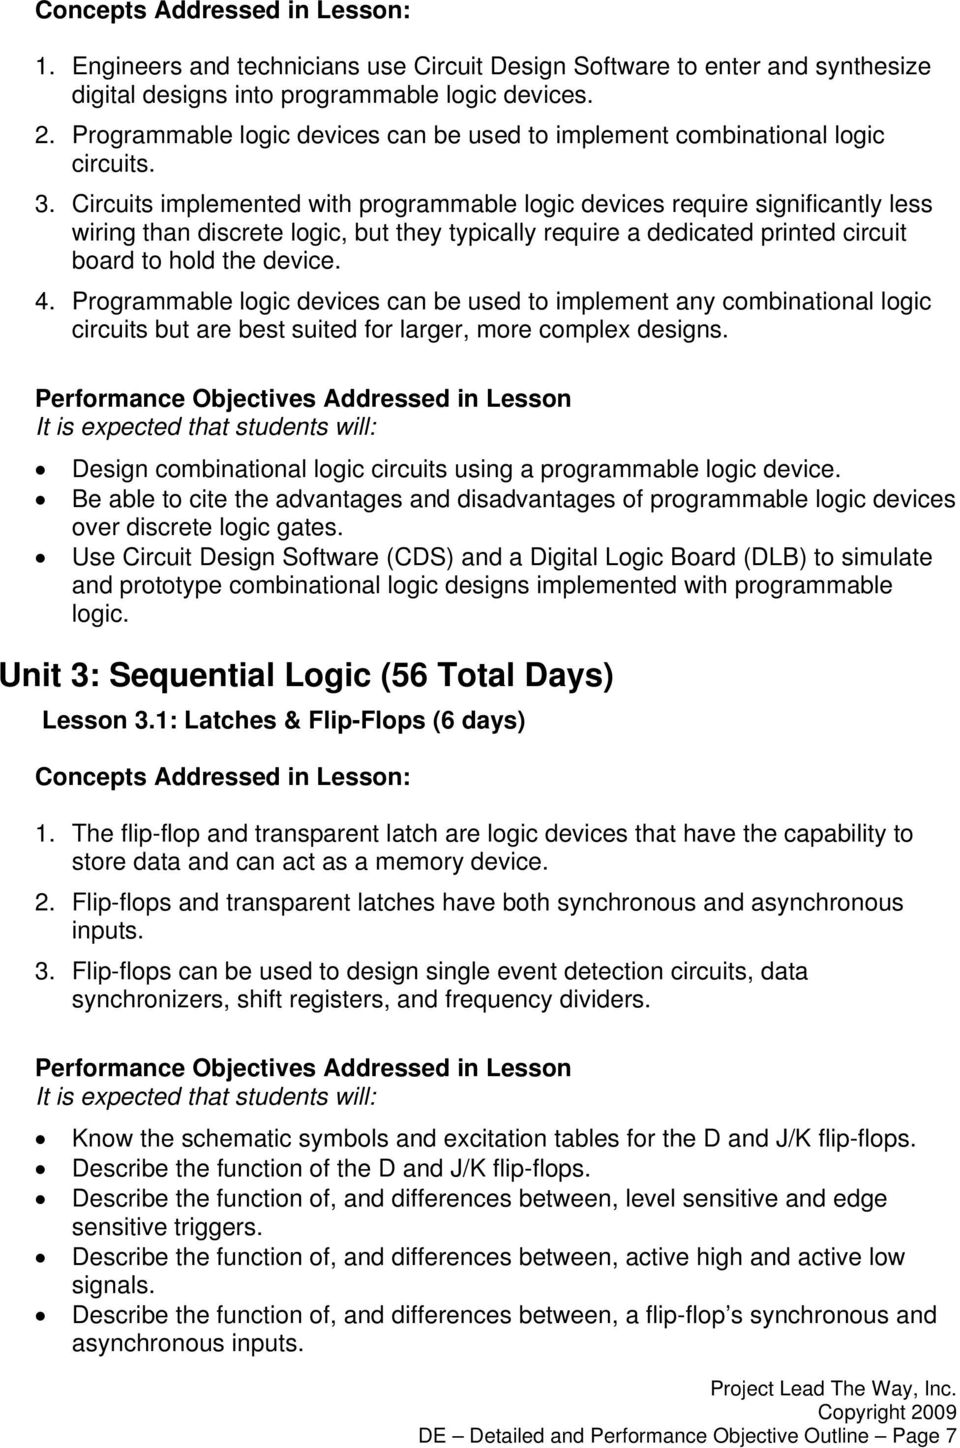 Digital Electronics Detailed Outline Pdf Synchronous Sequential Circuit With Jk Flipflops Example 85 Circuits Implemented Programmable Logic Devices Require Significantly Less Wiring Than Discrete But They